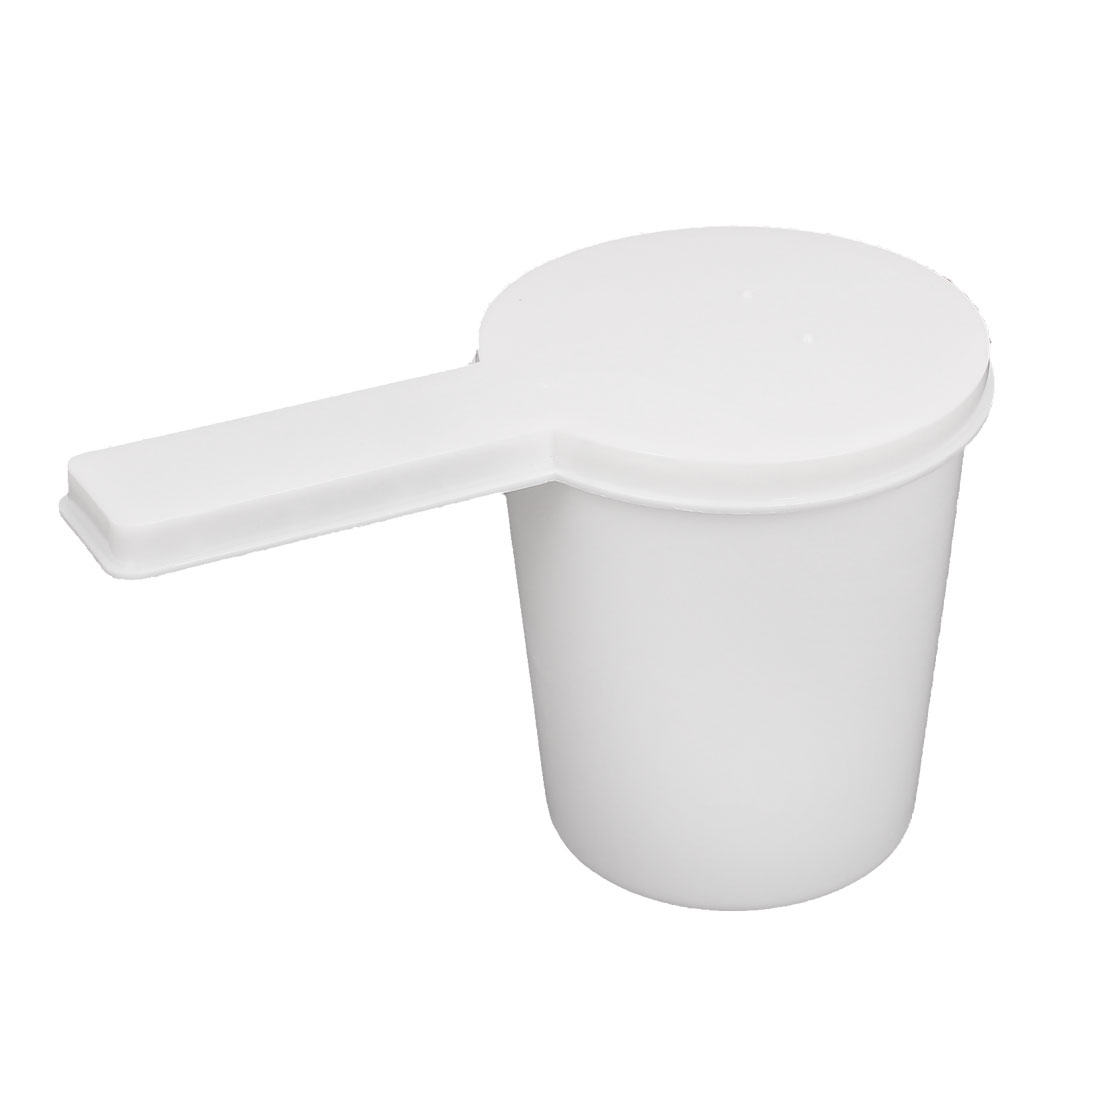 500ml Plastic White Beekeeper Feed Tools Bee Hive Entrance Feeder 2Pcs